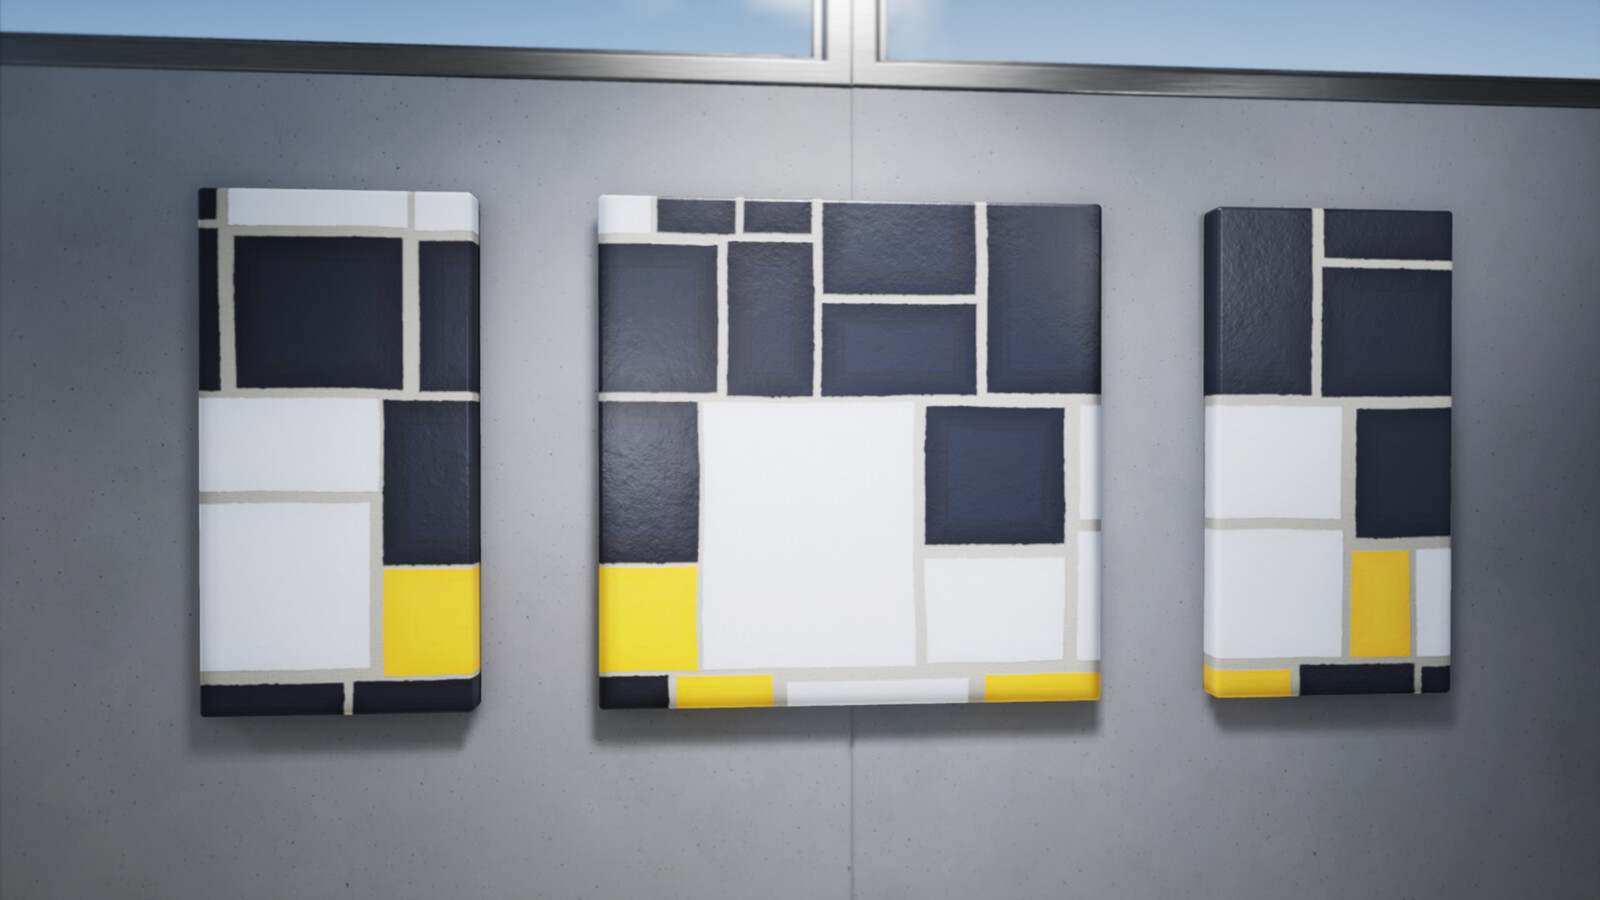 A few close-ups of the paintings in Unreal